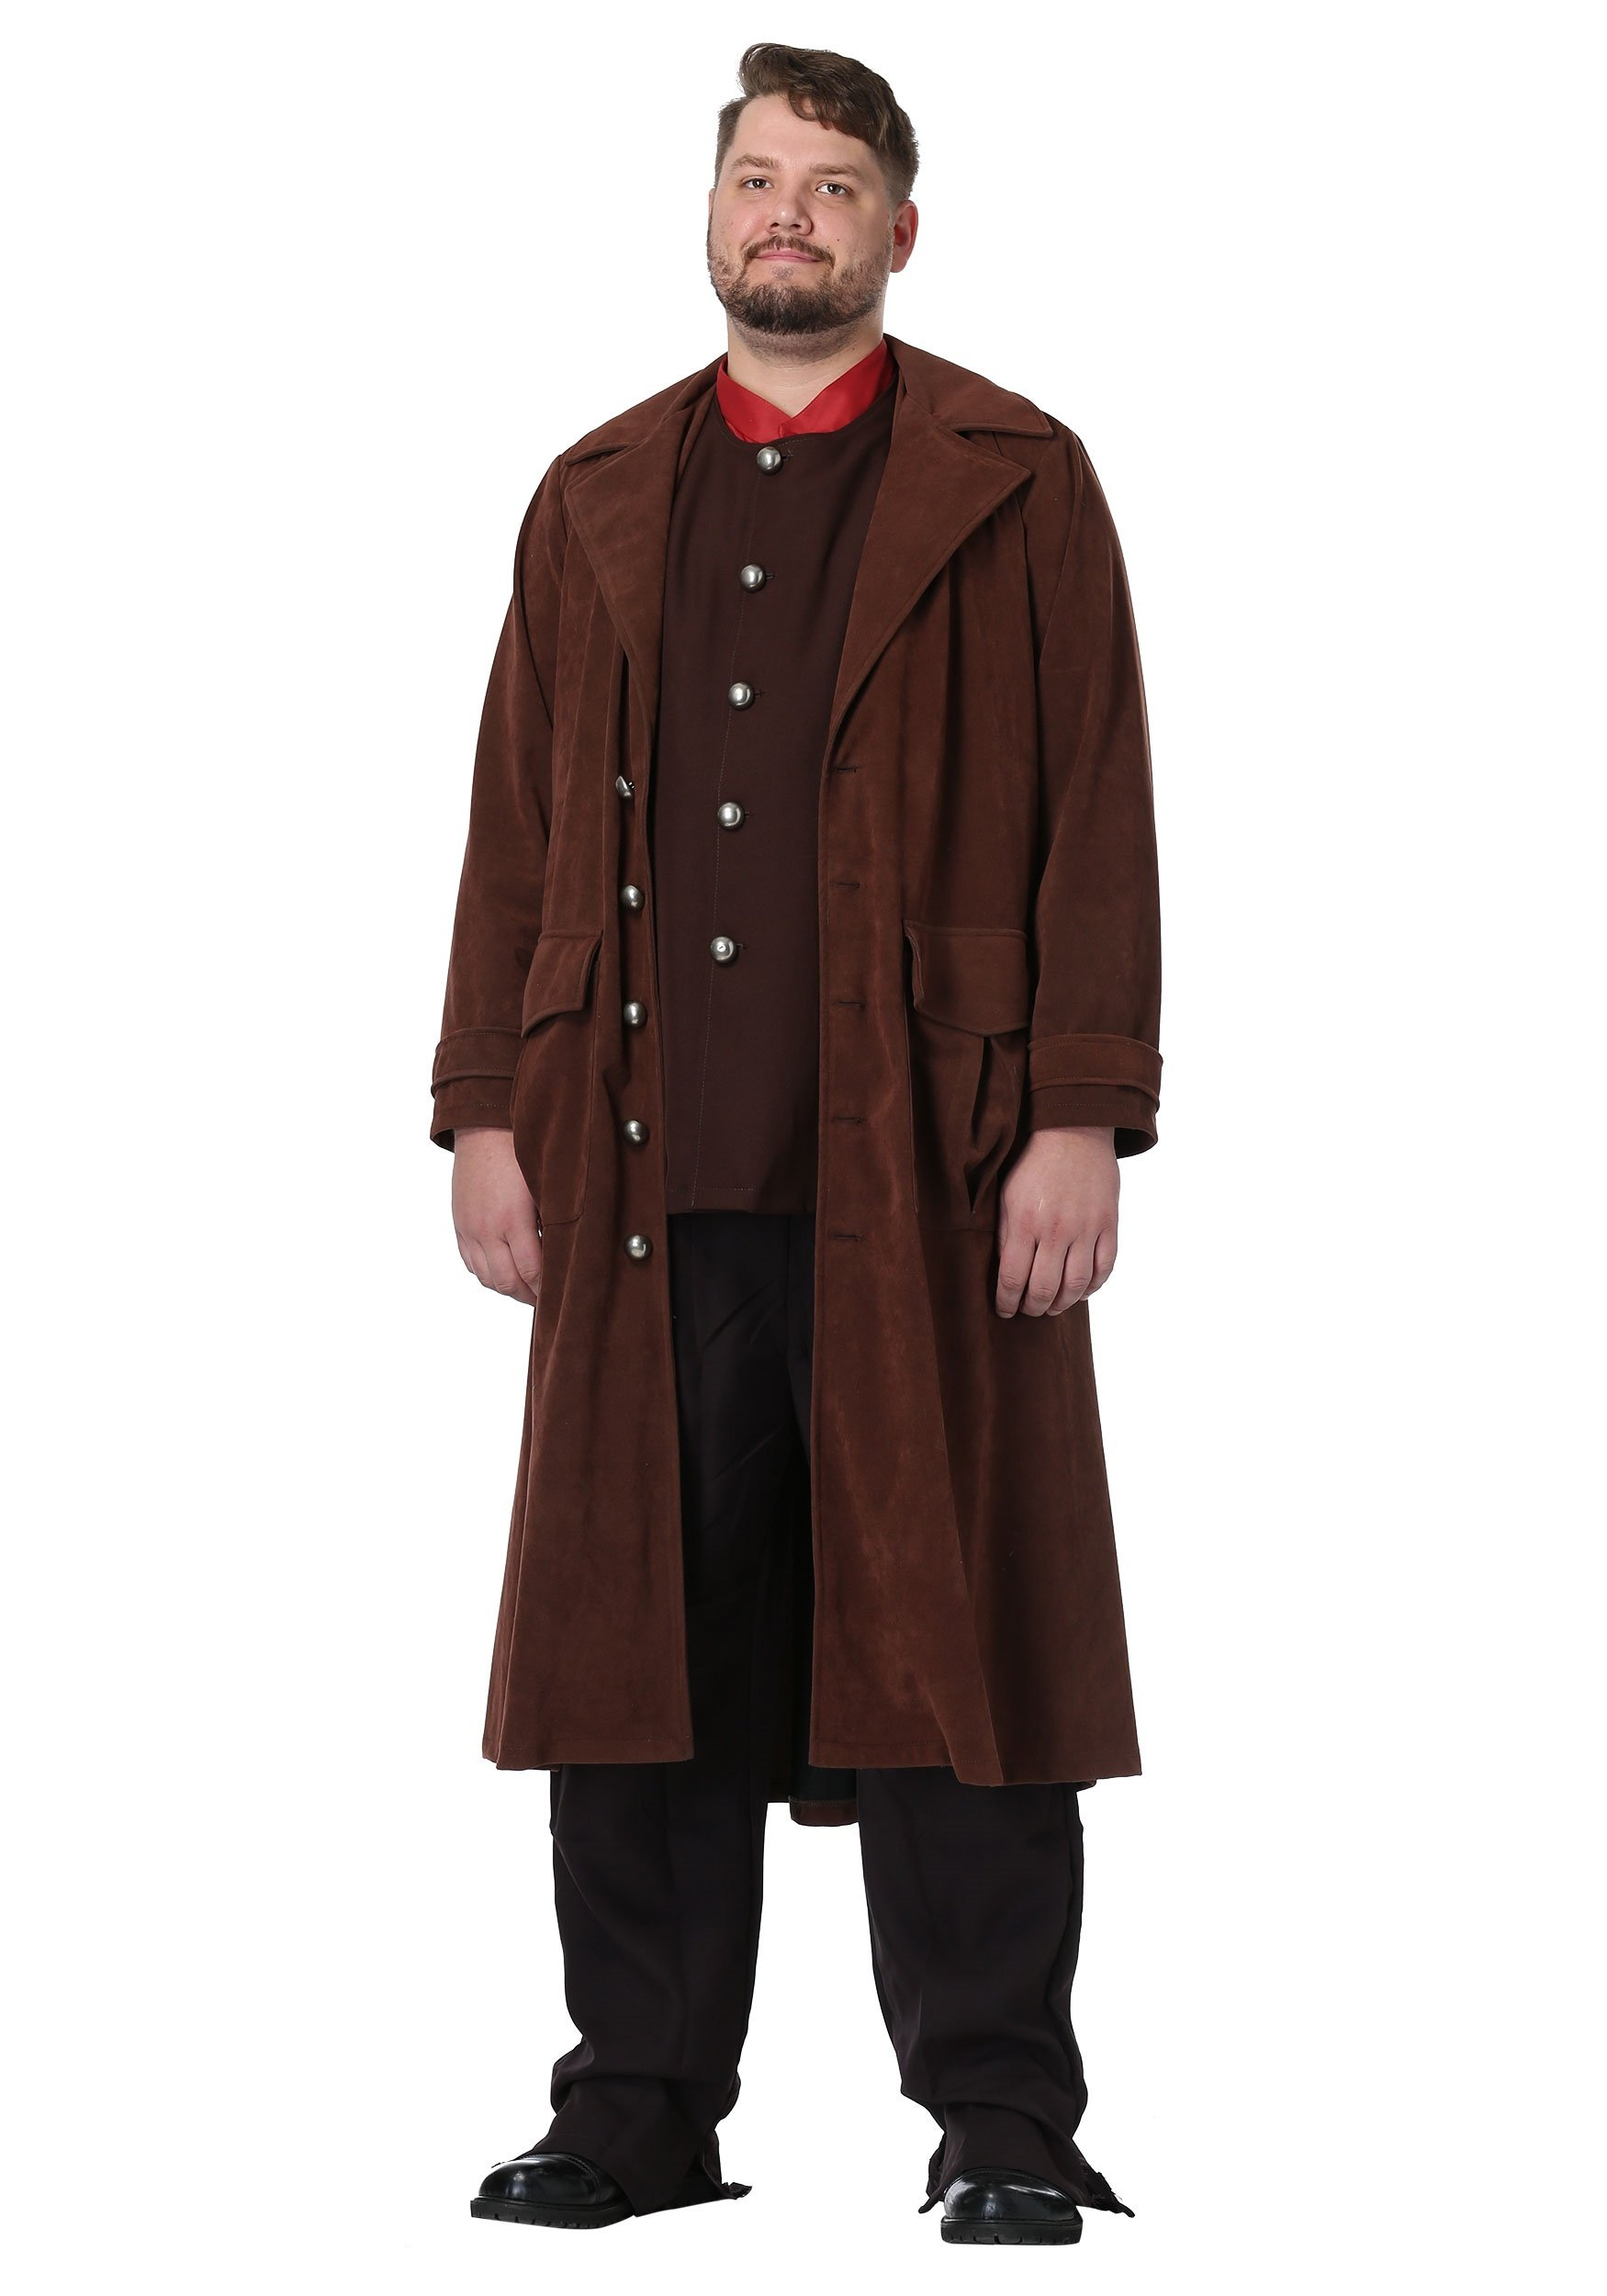 Harry Potter Deluxe Hagrid Plus Size Mens Costume 3X